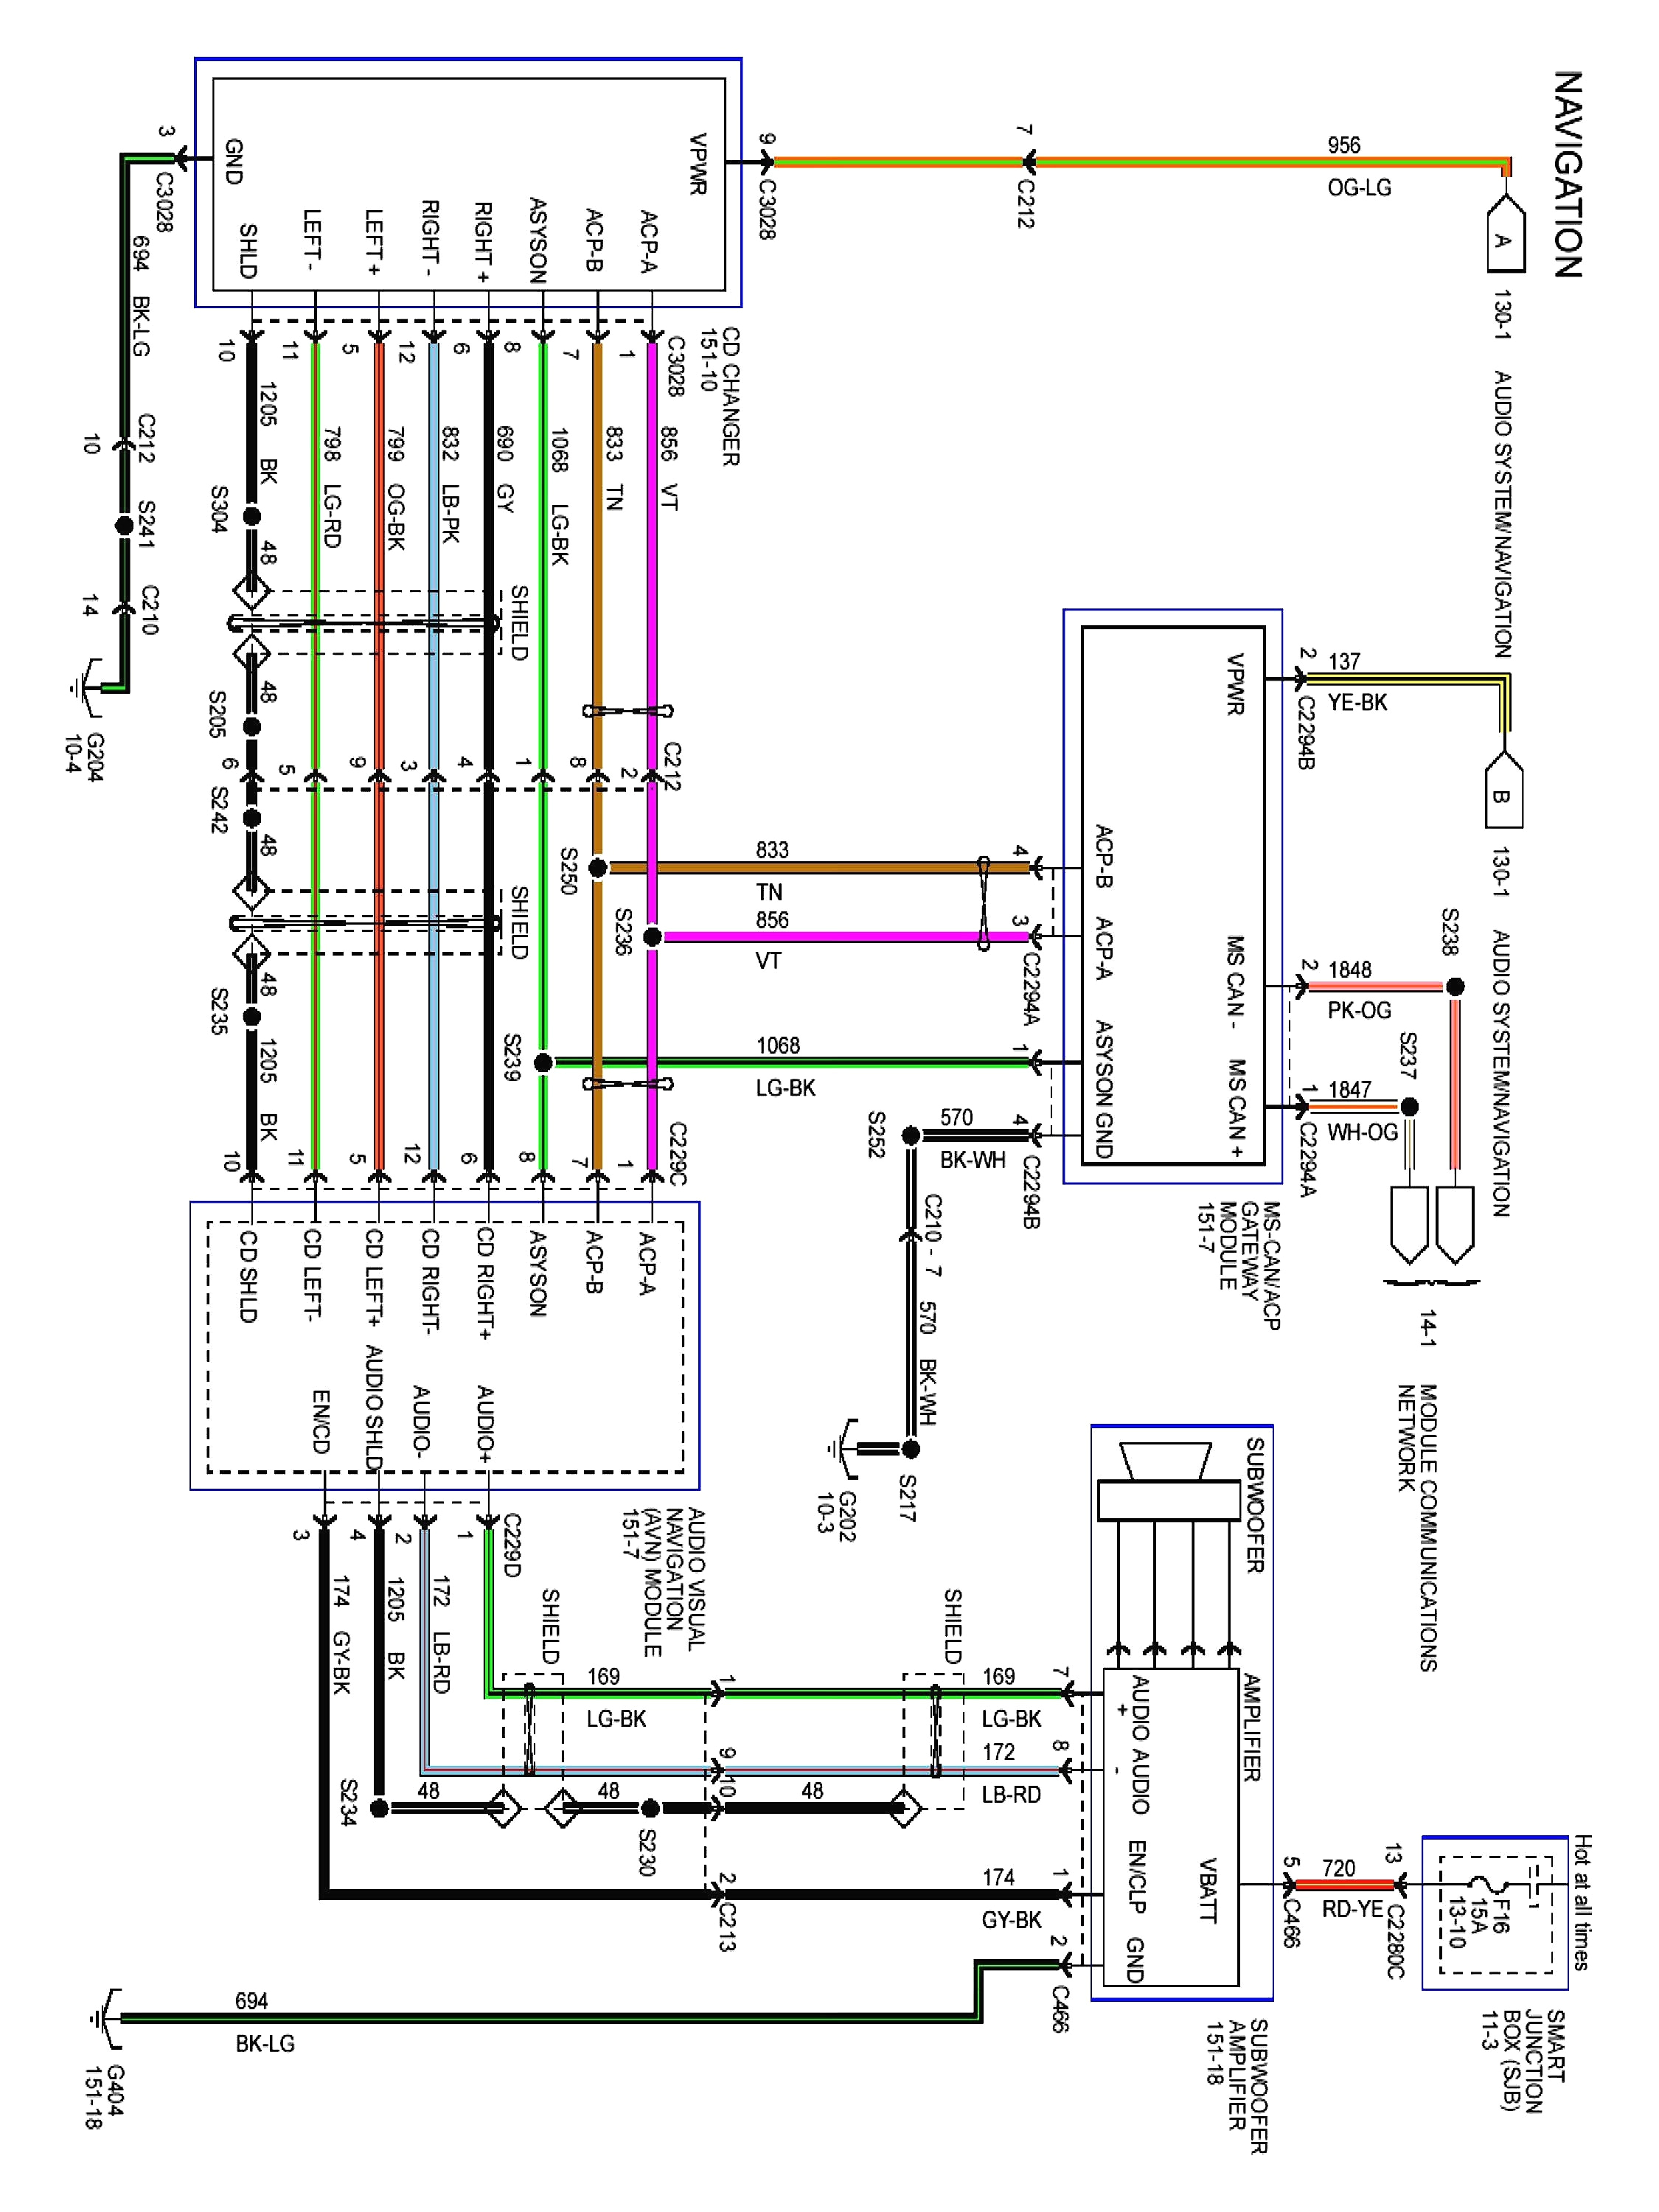 2000 ford Expedition Fuel Pump Wiring Diagram Wiring Diagram Diagnostics 3 2005 ford Expedition Adjustable Pedals